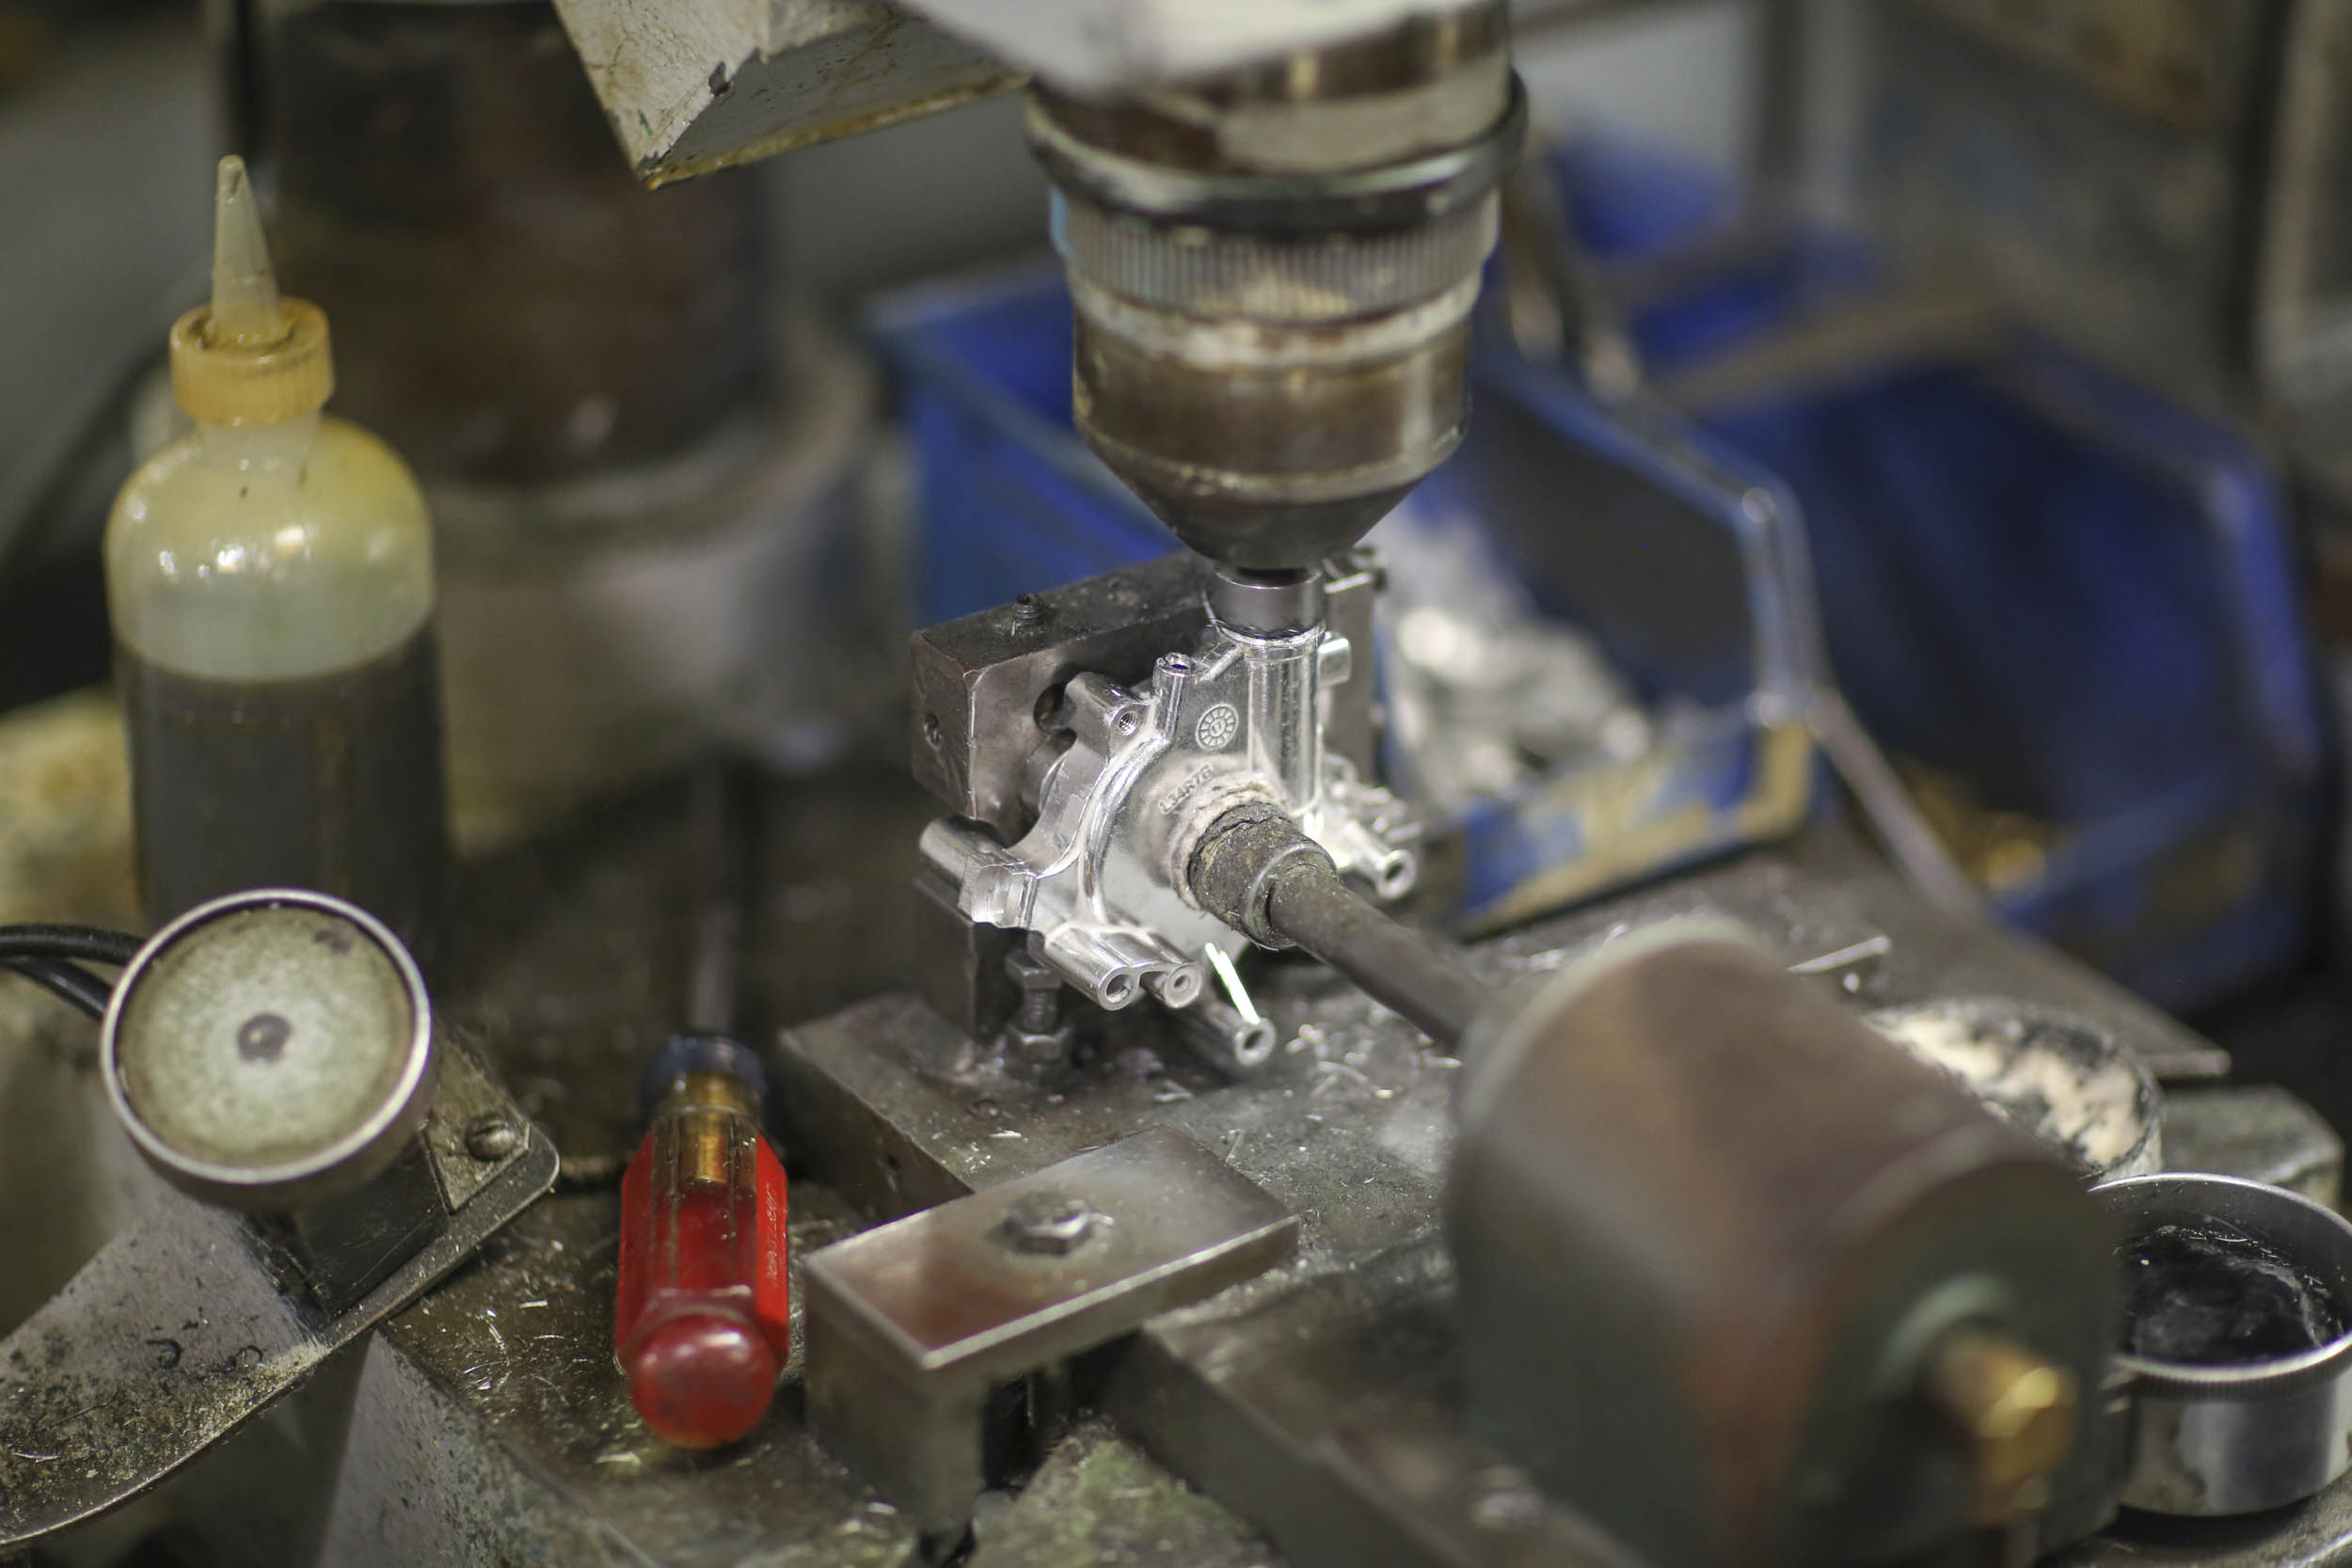 Holley four-barrel carburetor machining